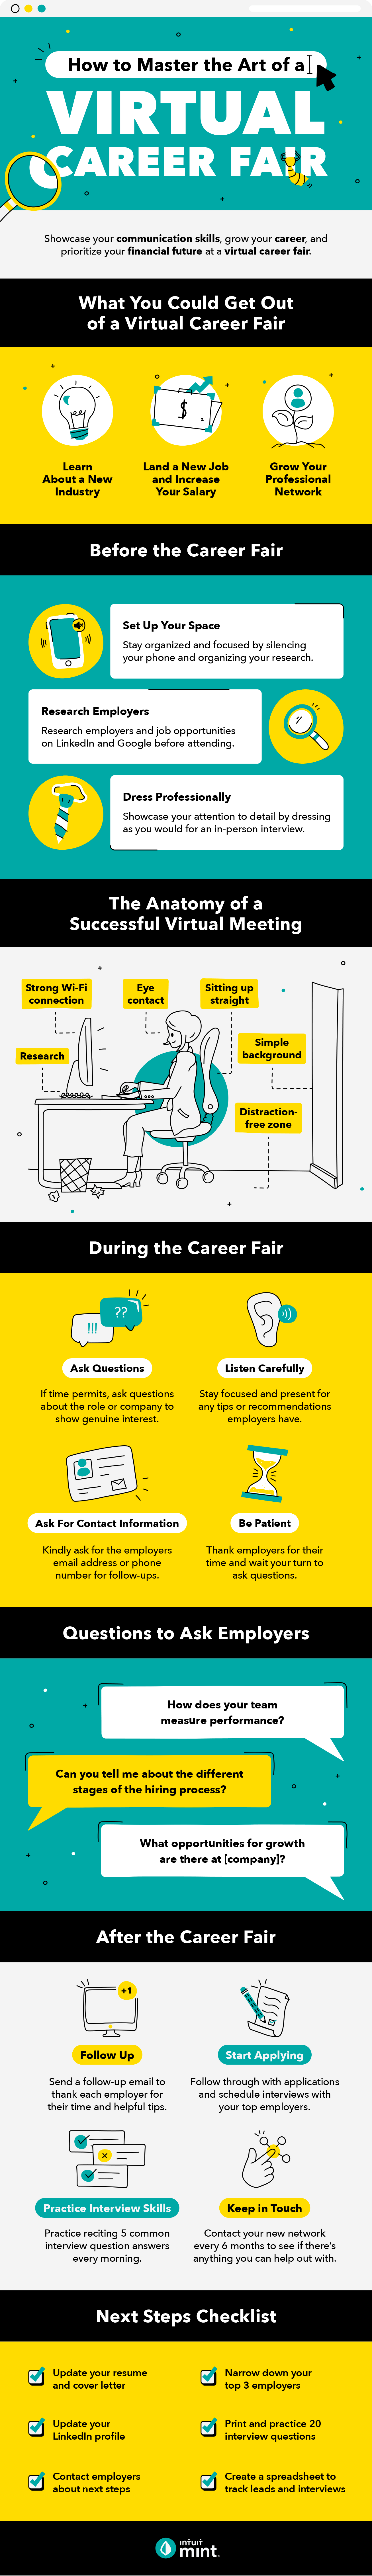 How to Master the Art of a Virtual Career Fair